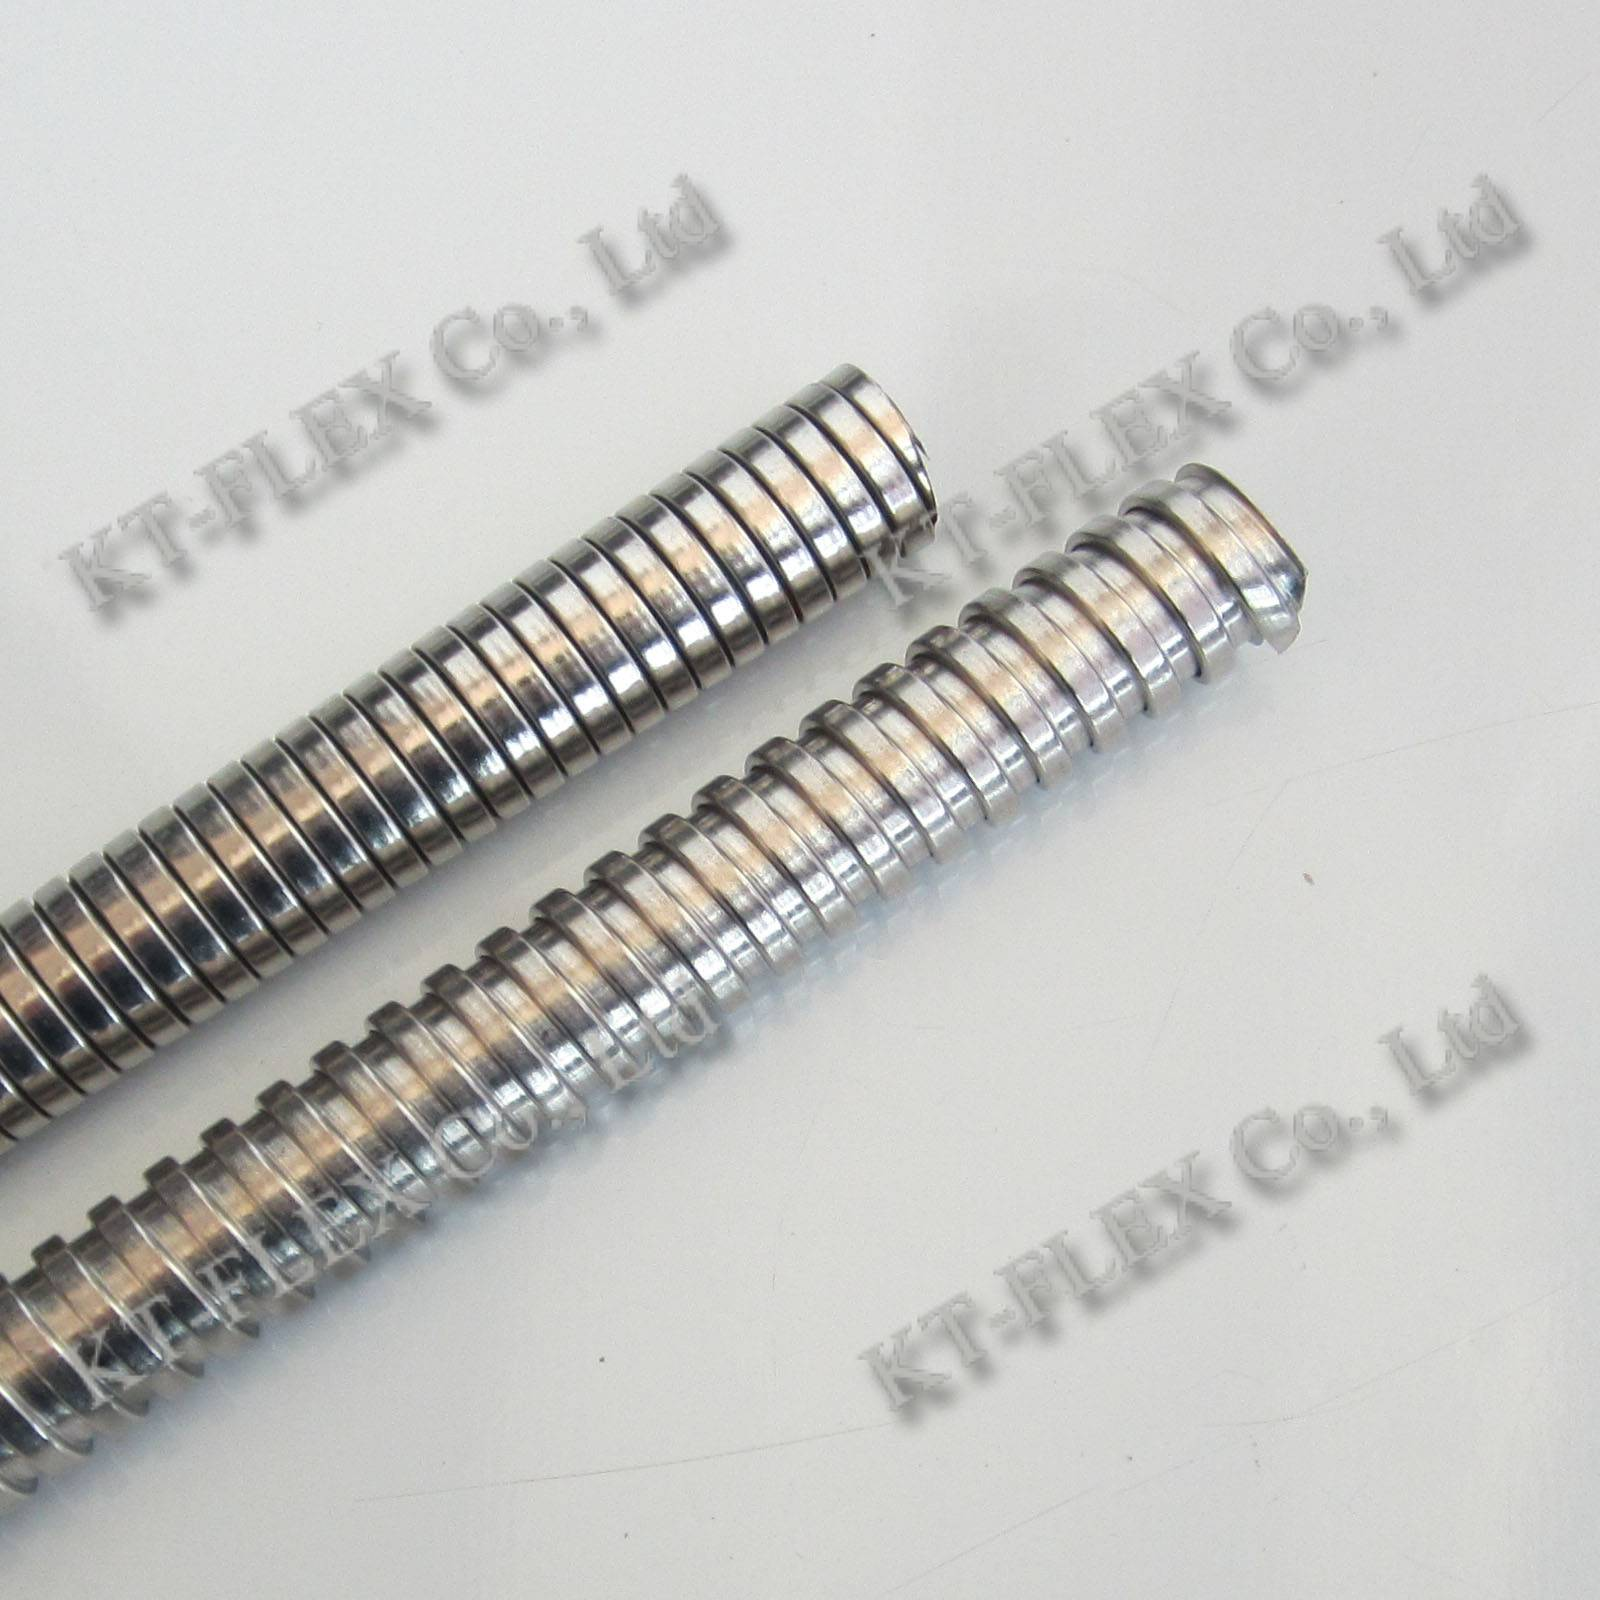 Interlocked metallic flexible electrical cable conduit SS304